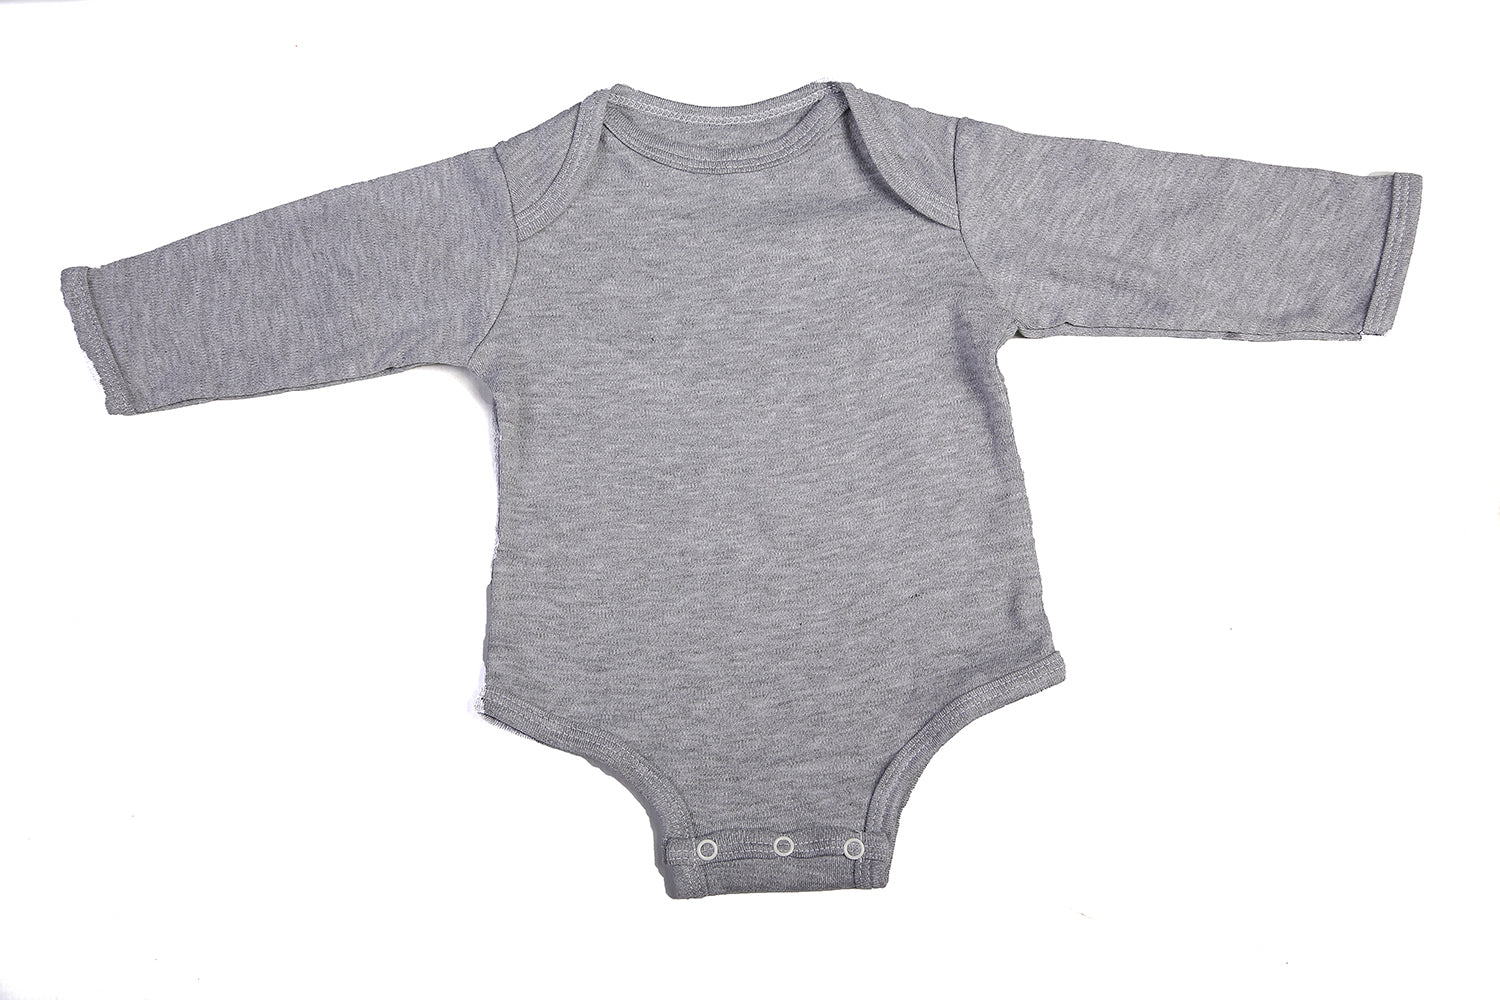 Blank Long-Sleeved Baby Onesies Available To Buy In Bulk – Little Lumps